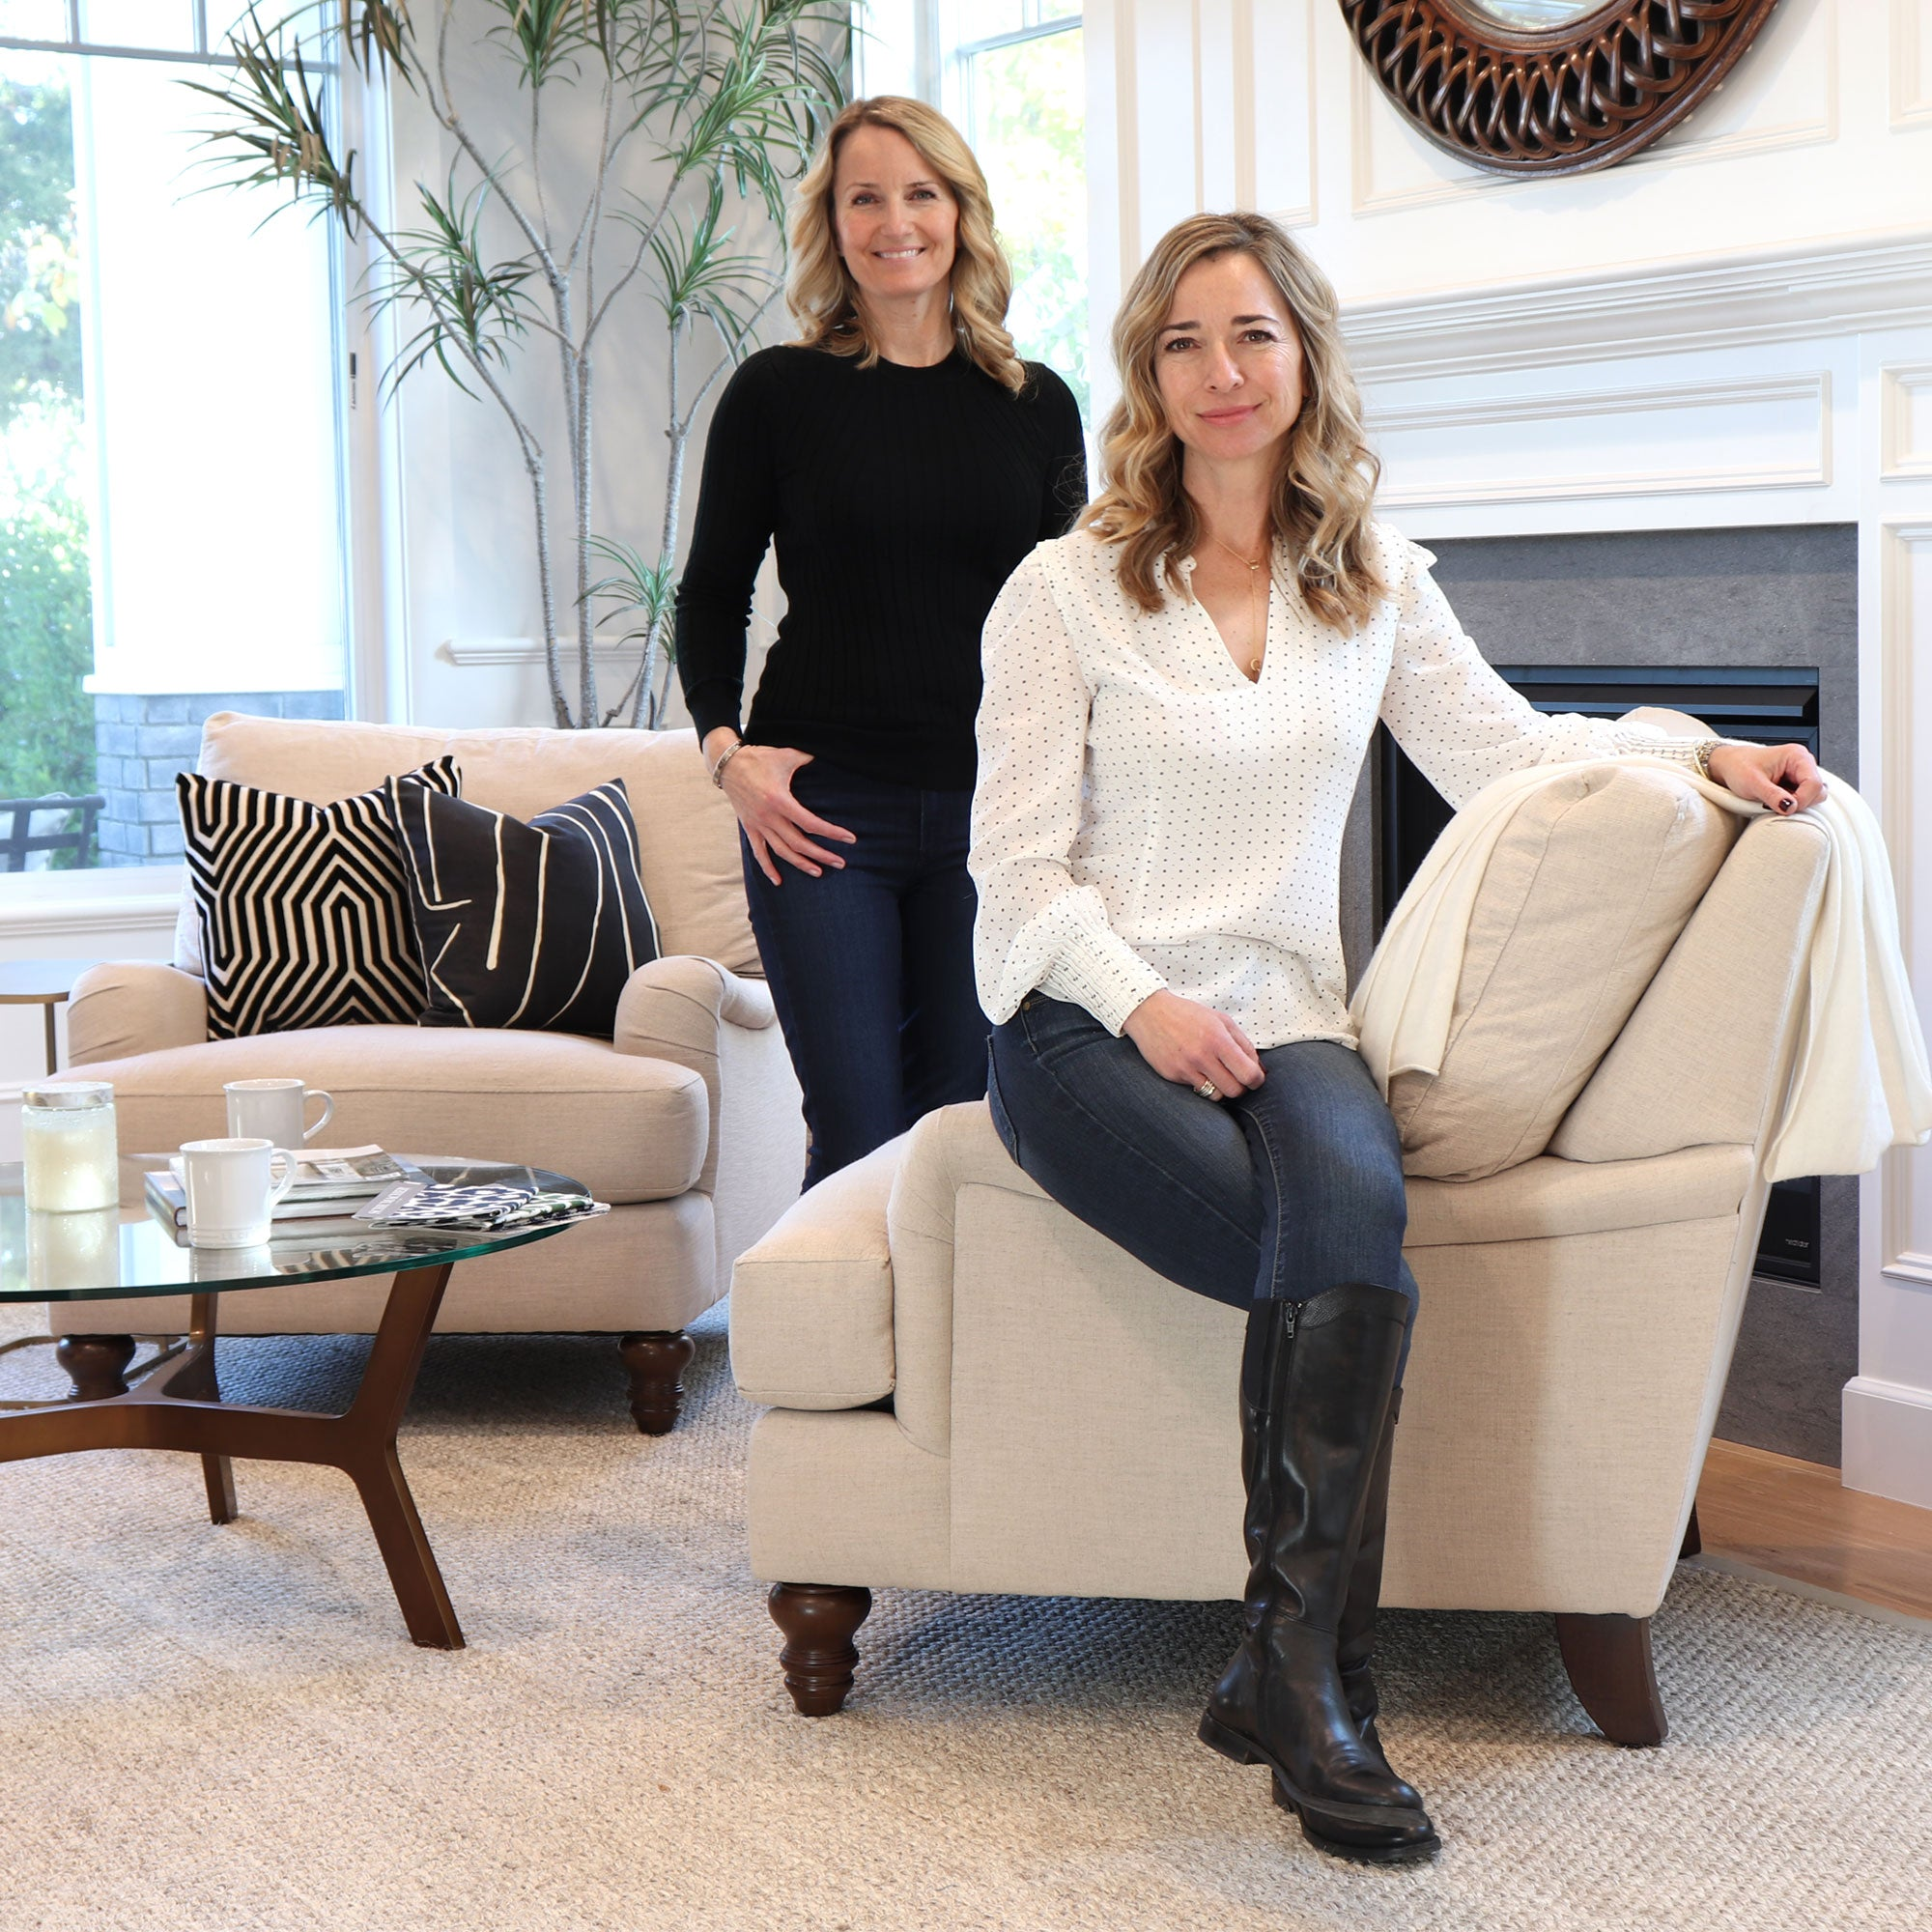 Chloe and Olive Founders